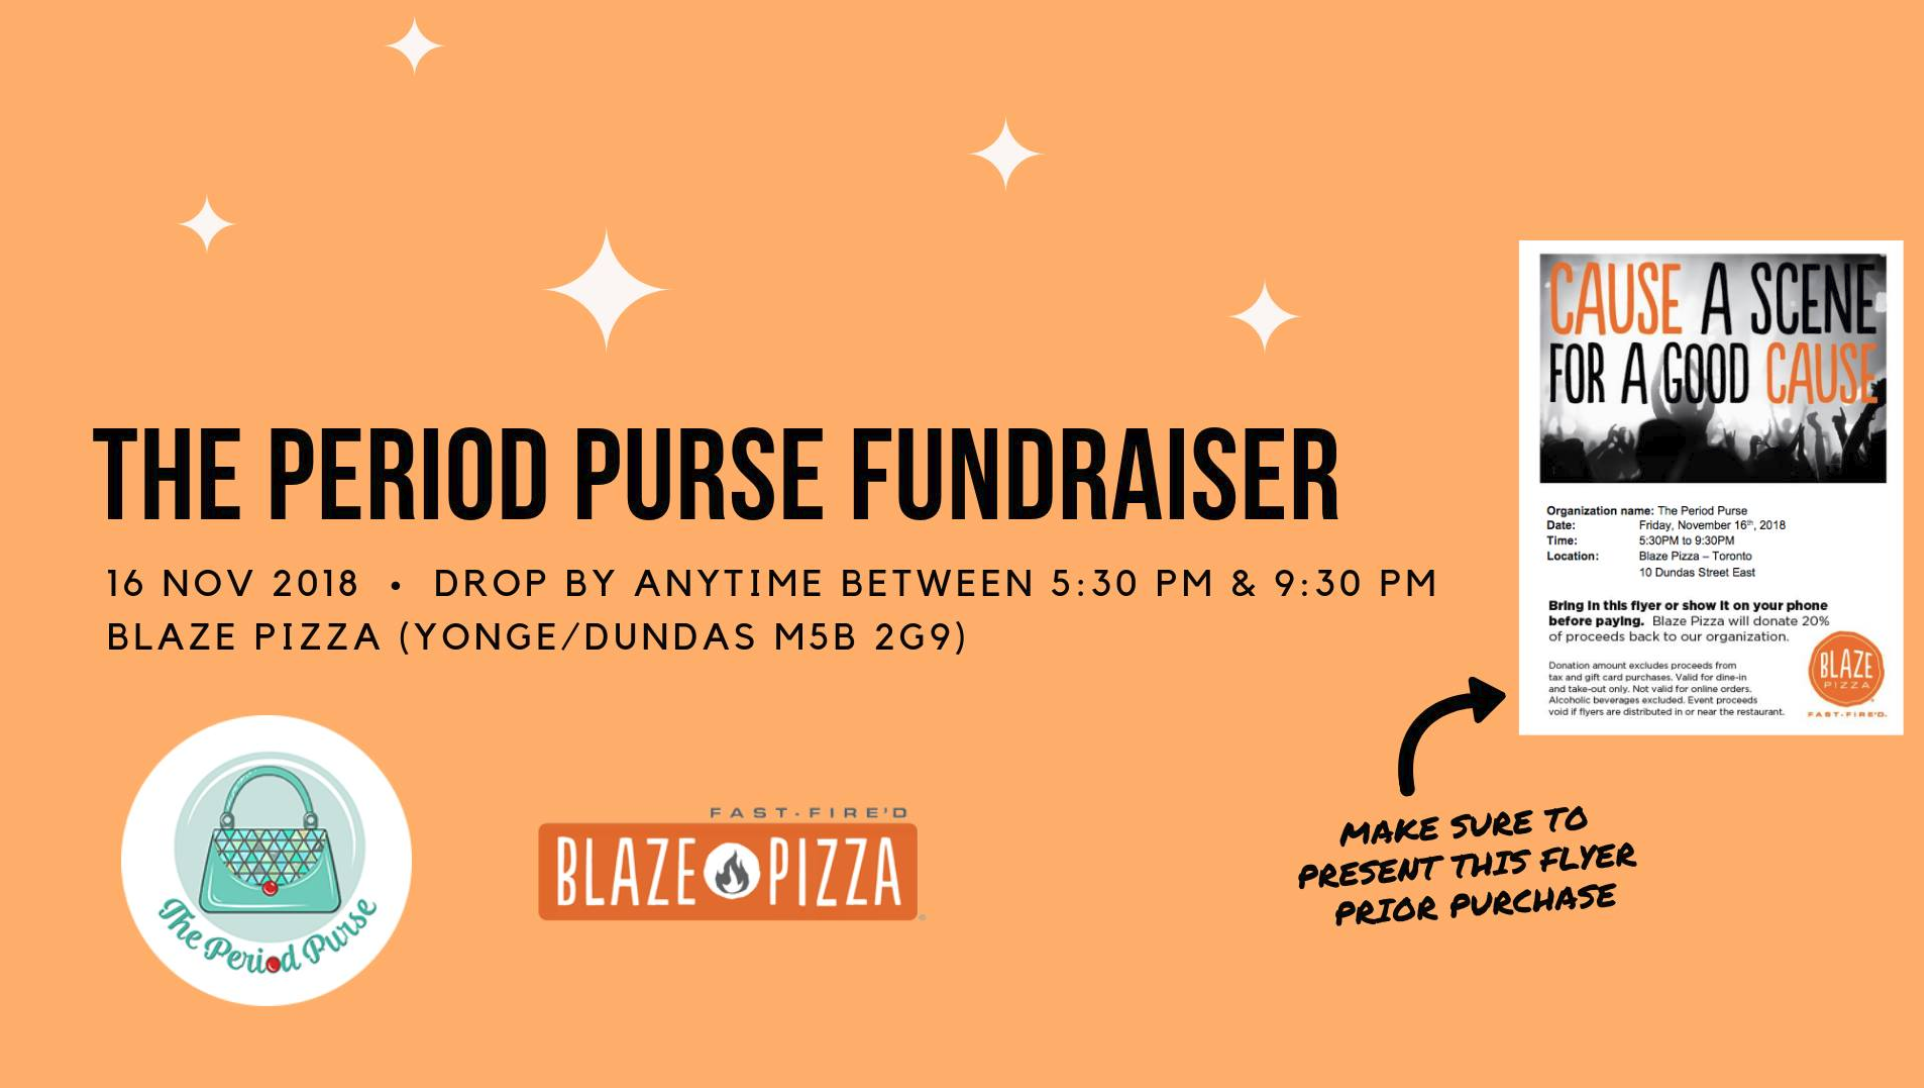 Fundraising with The Period Purse and Blaze Pizza